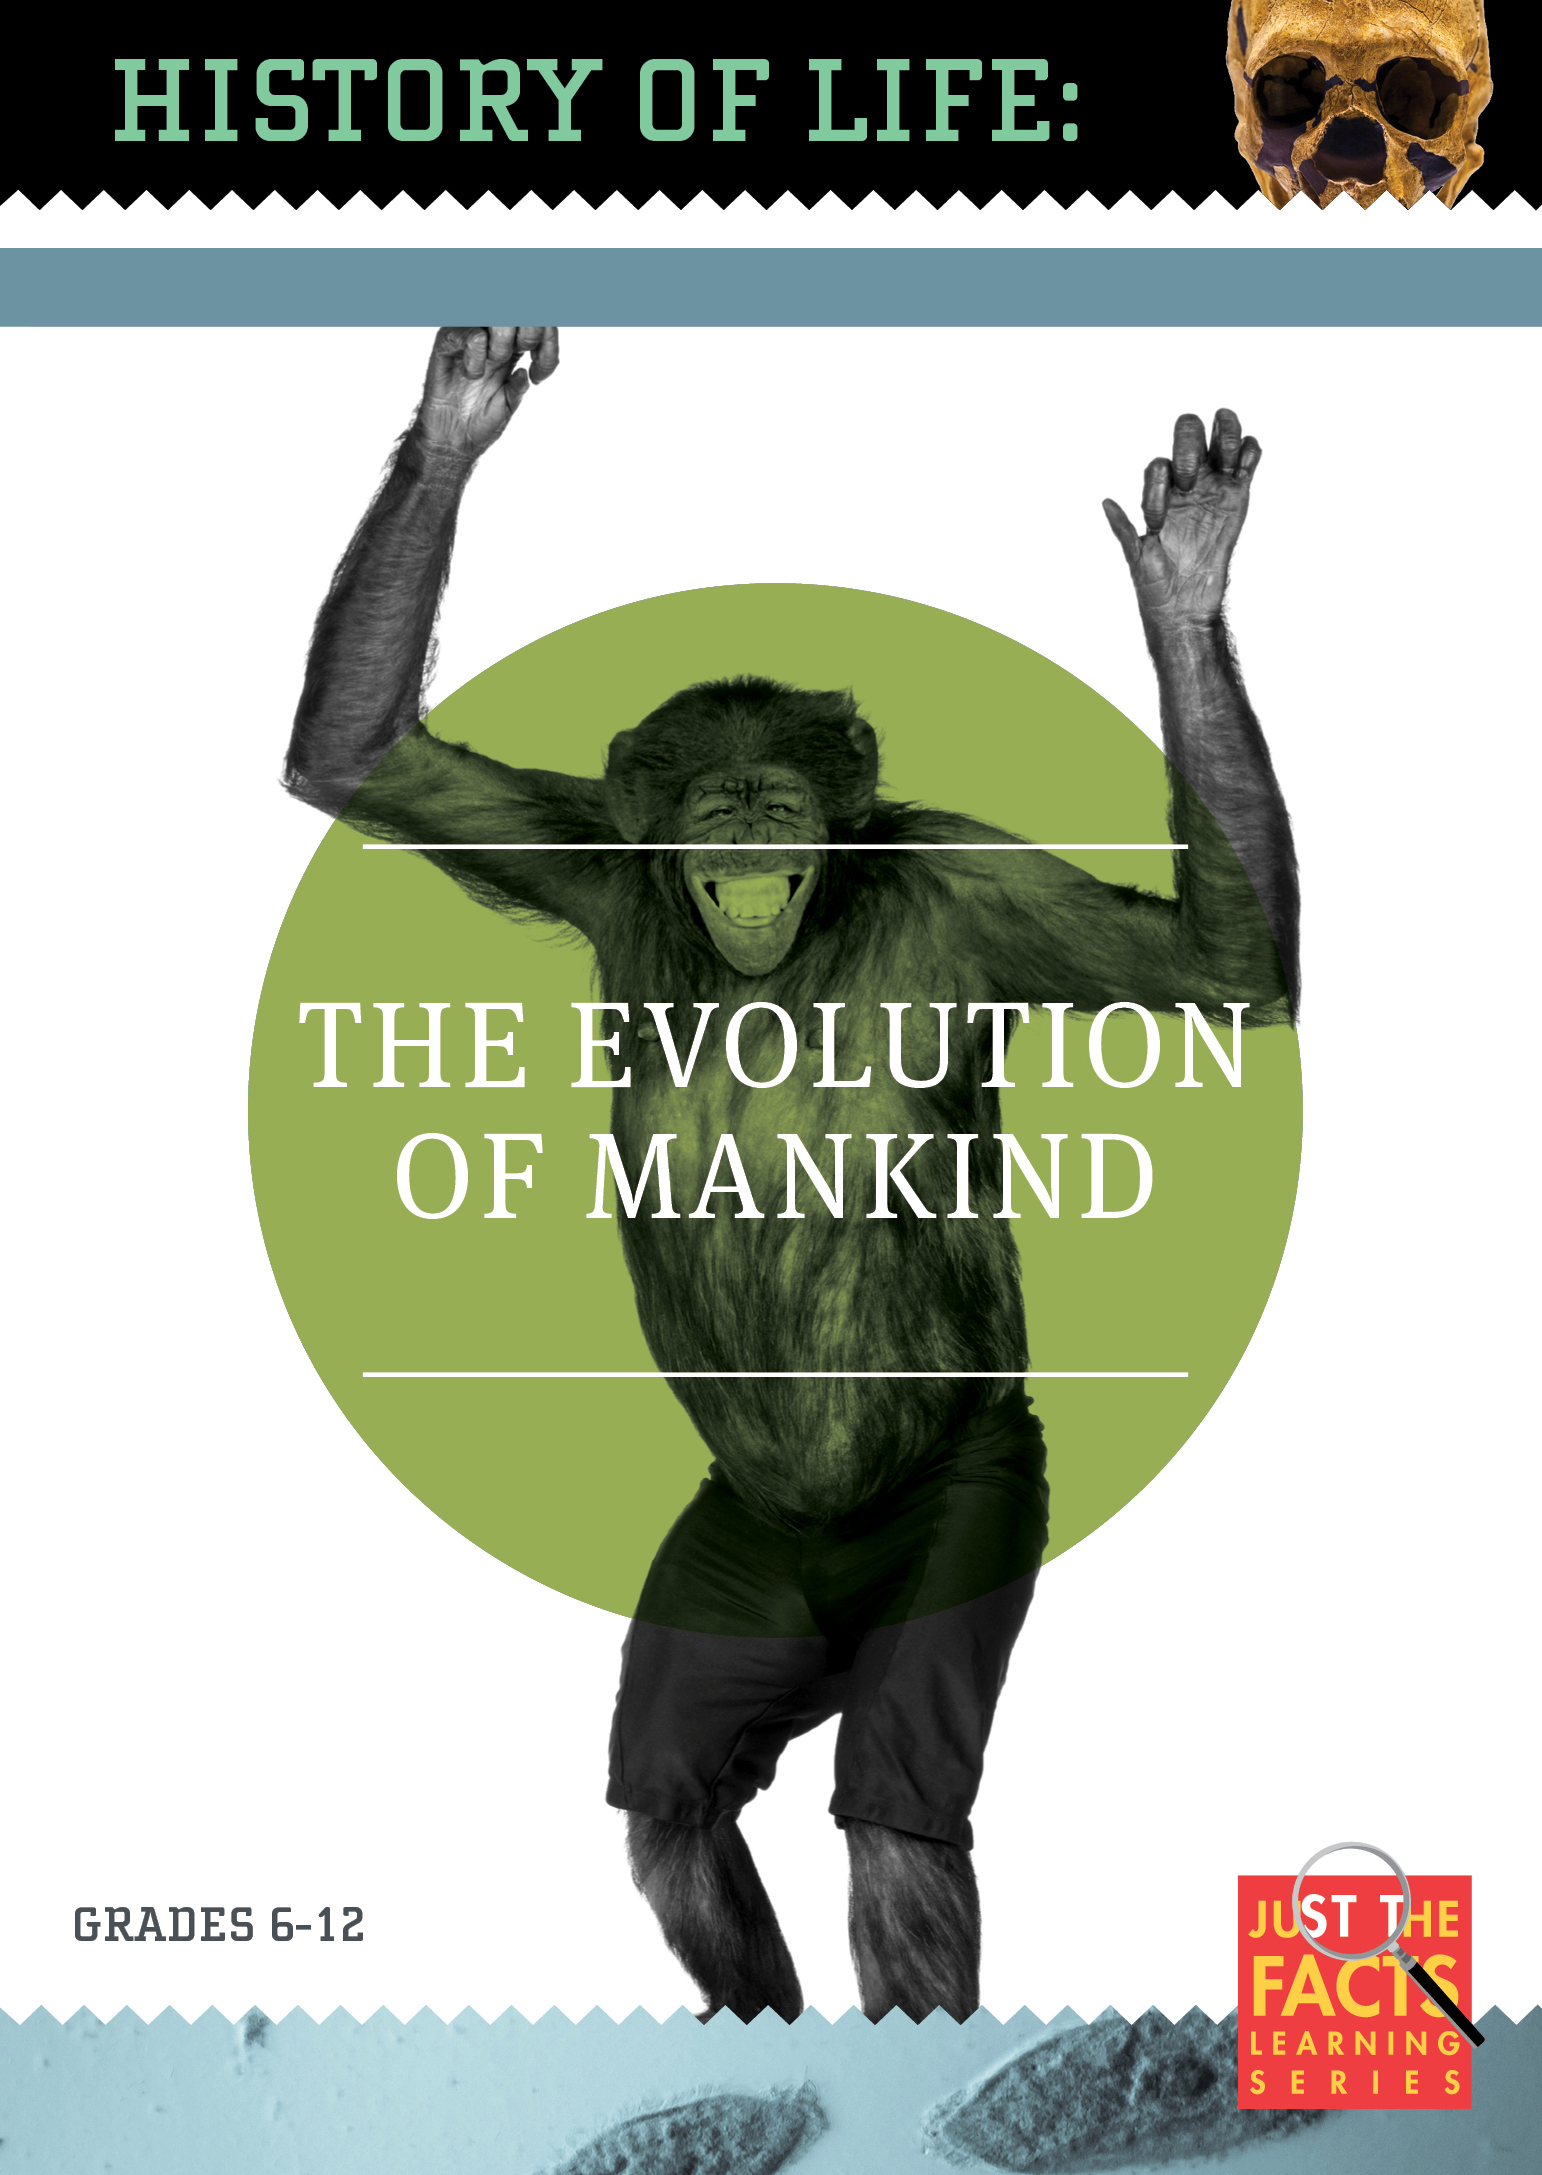 History of Life: The Evolution of Mankind